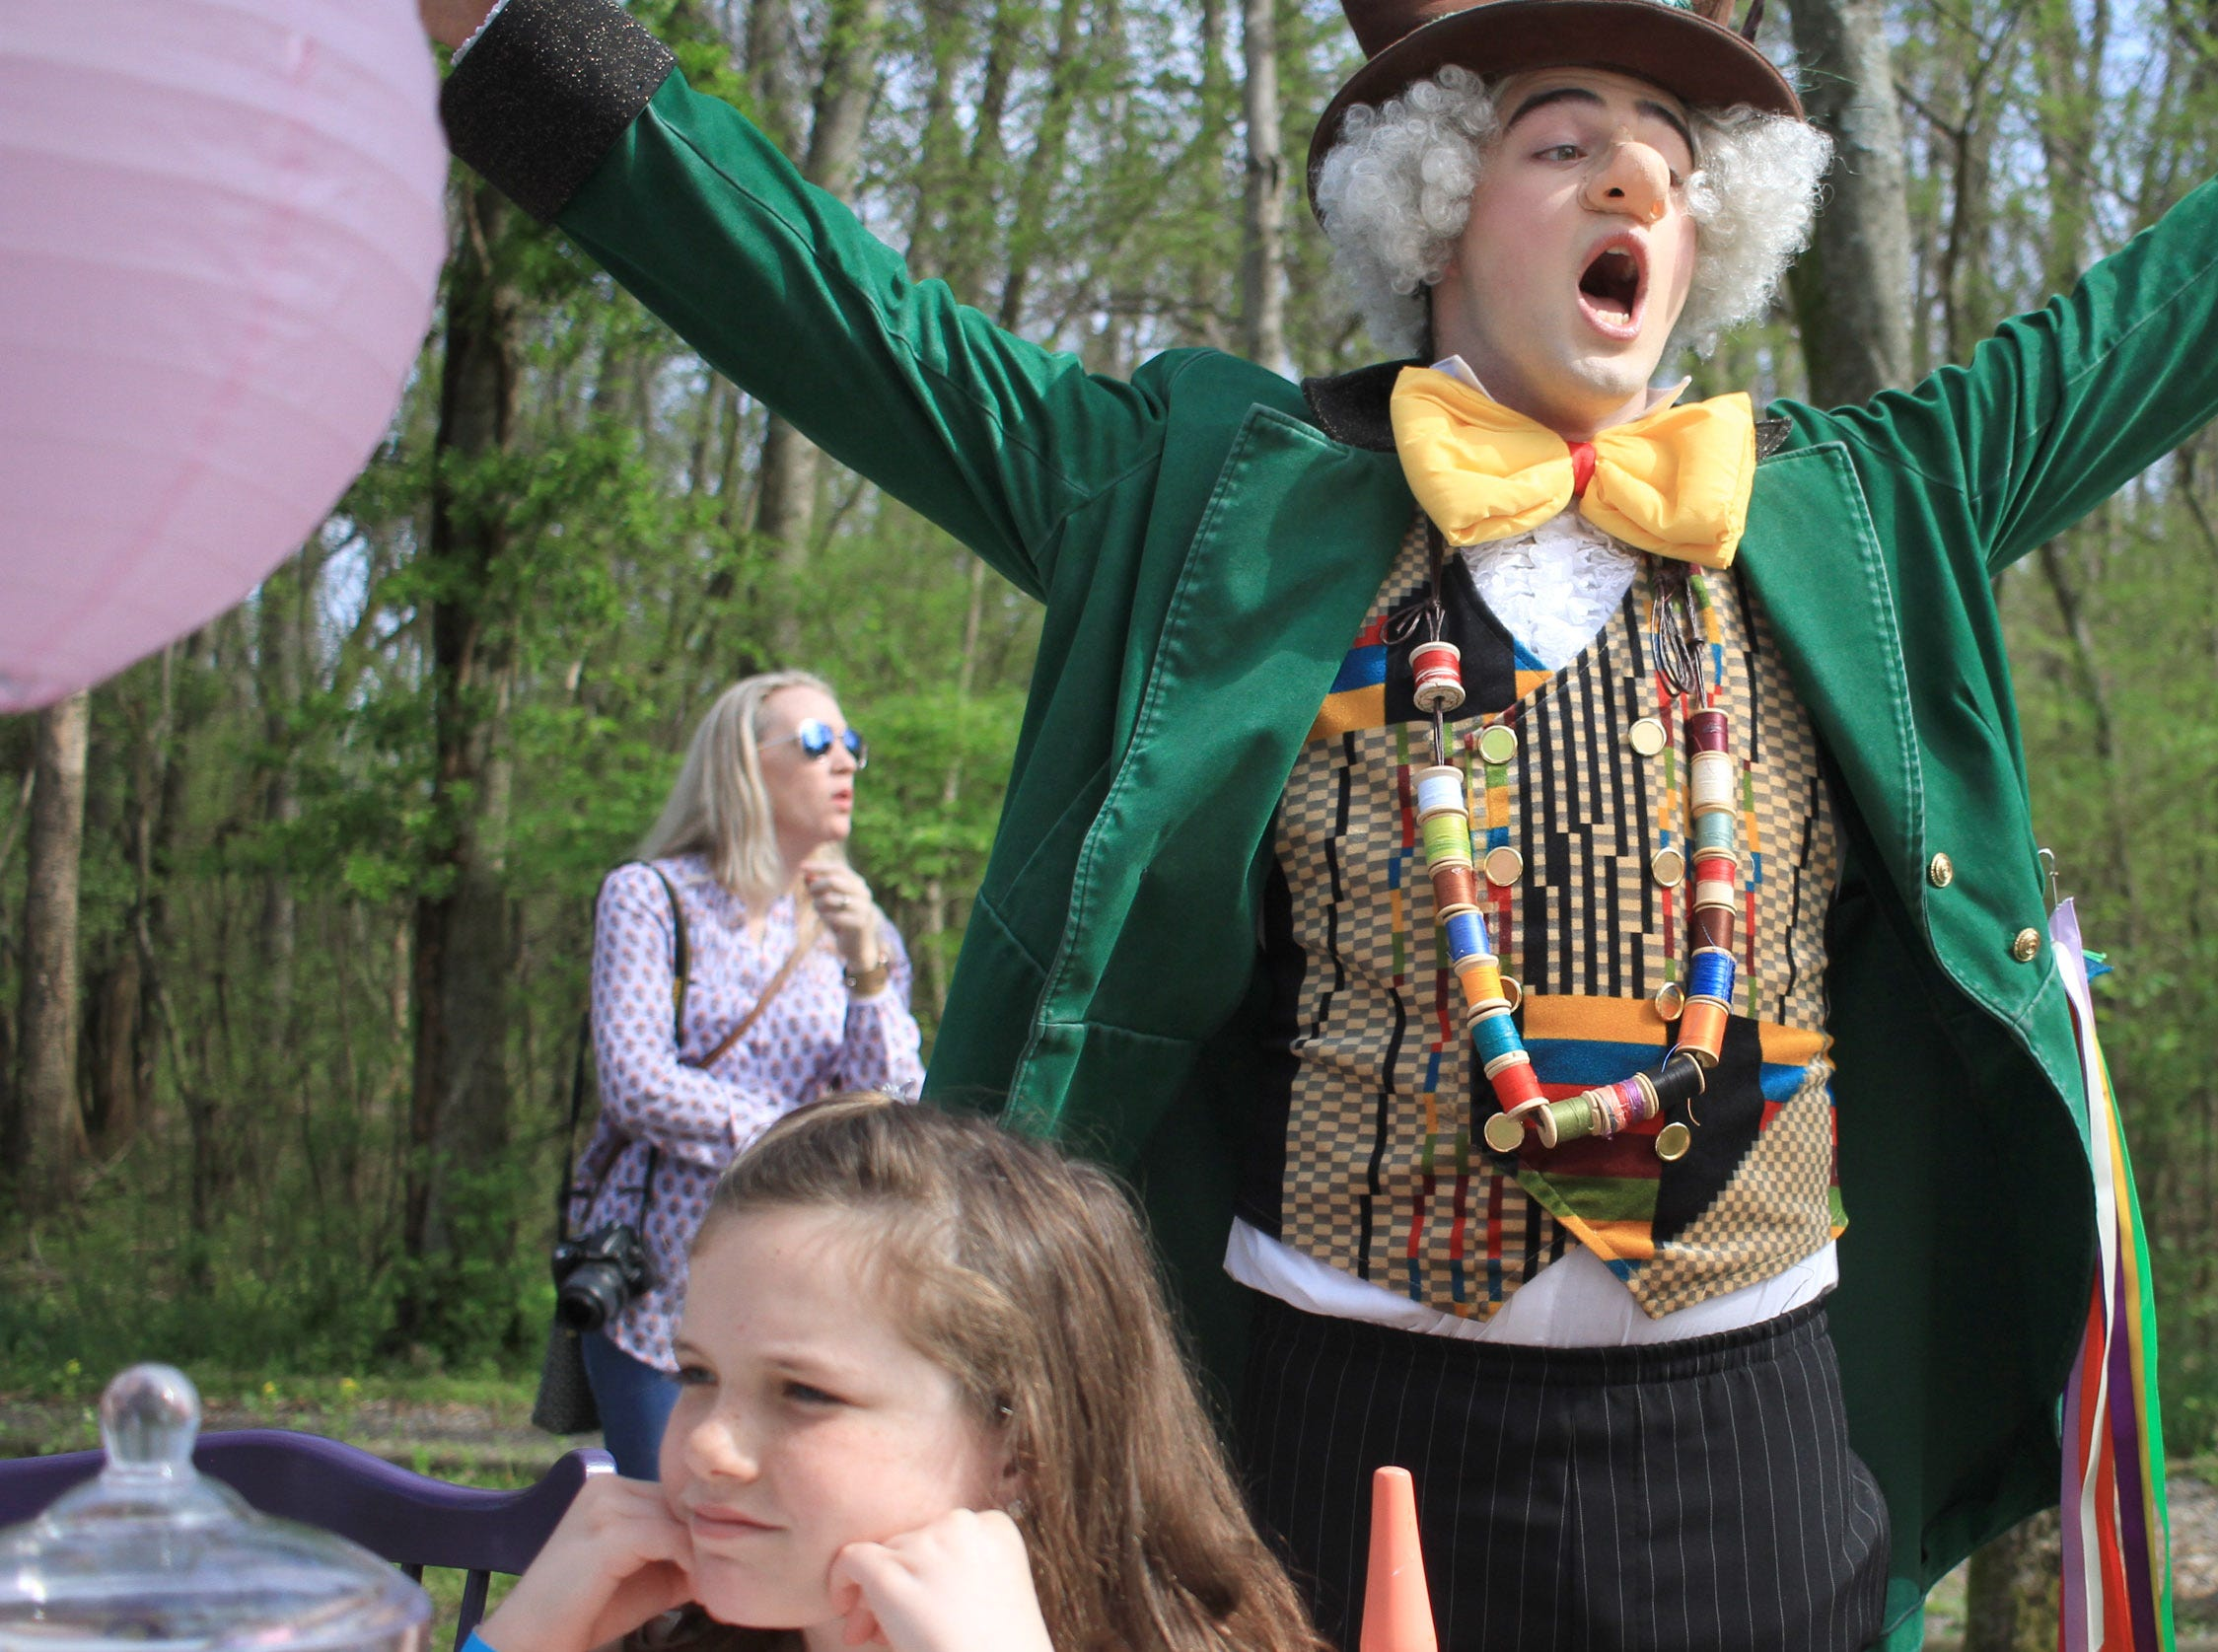 The Mad Hatter struggles to keep the attention at the Mad Hatter Tea Party at Rock Castle in Hendersonville, TN on Saturday, April 6, 2019.